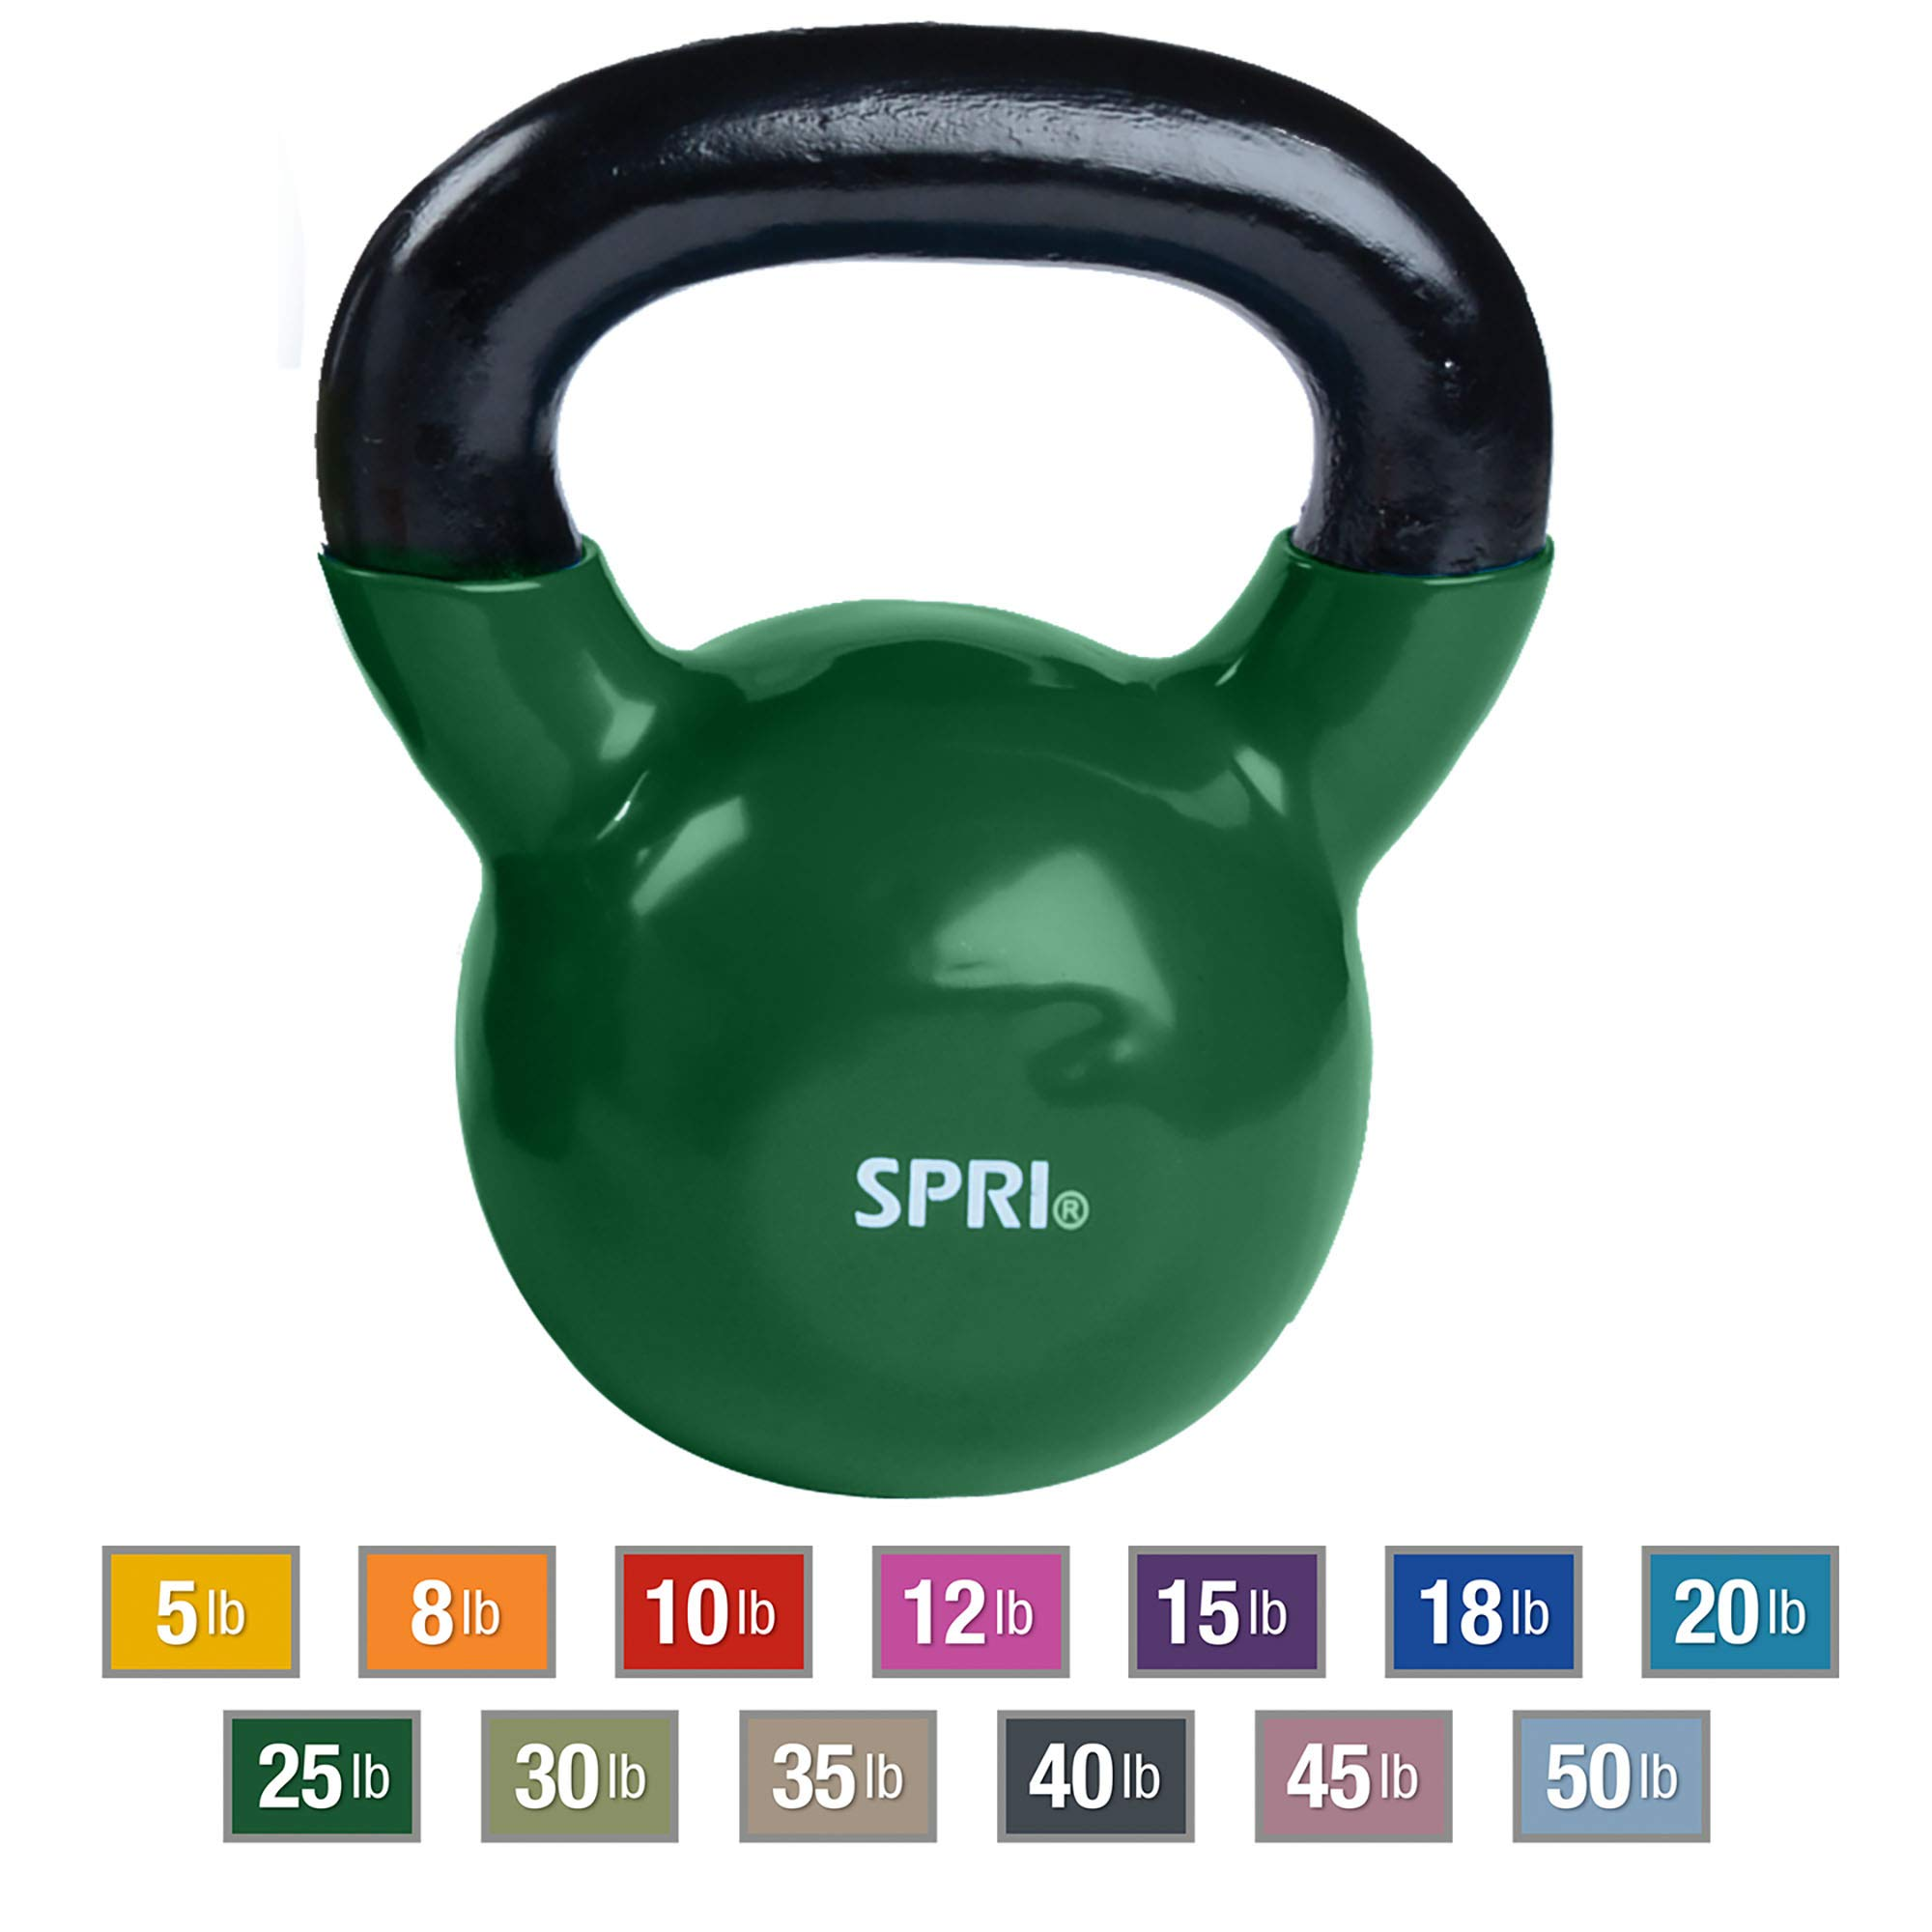 SPRI Kettlebell Weights Deluxe Cast Iron Vinyl Coated Comfort Grip Wide Handle Color Coded Kettlebell Weight Set (Green, 25-Pound)